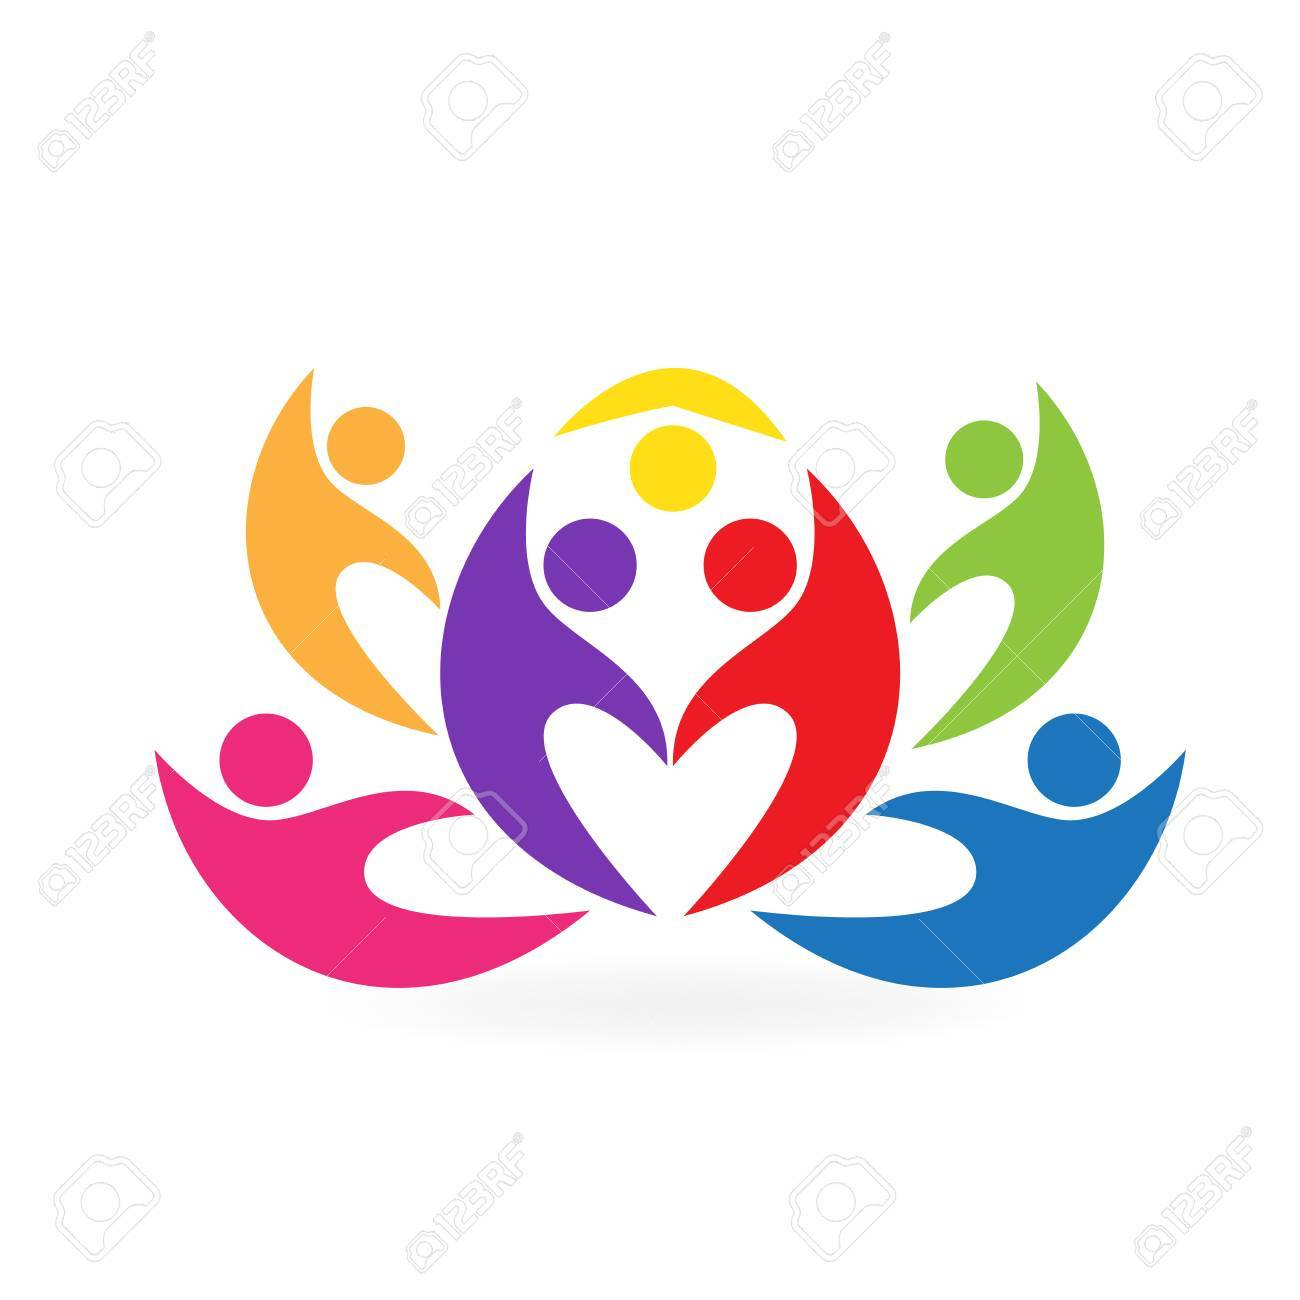 Lotus Flower Teamwork People Icon Vector Image Royalty Free Cliparts